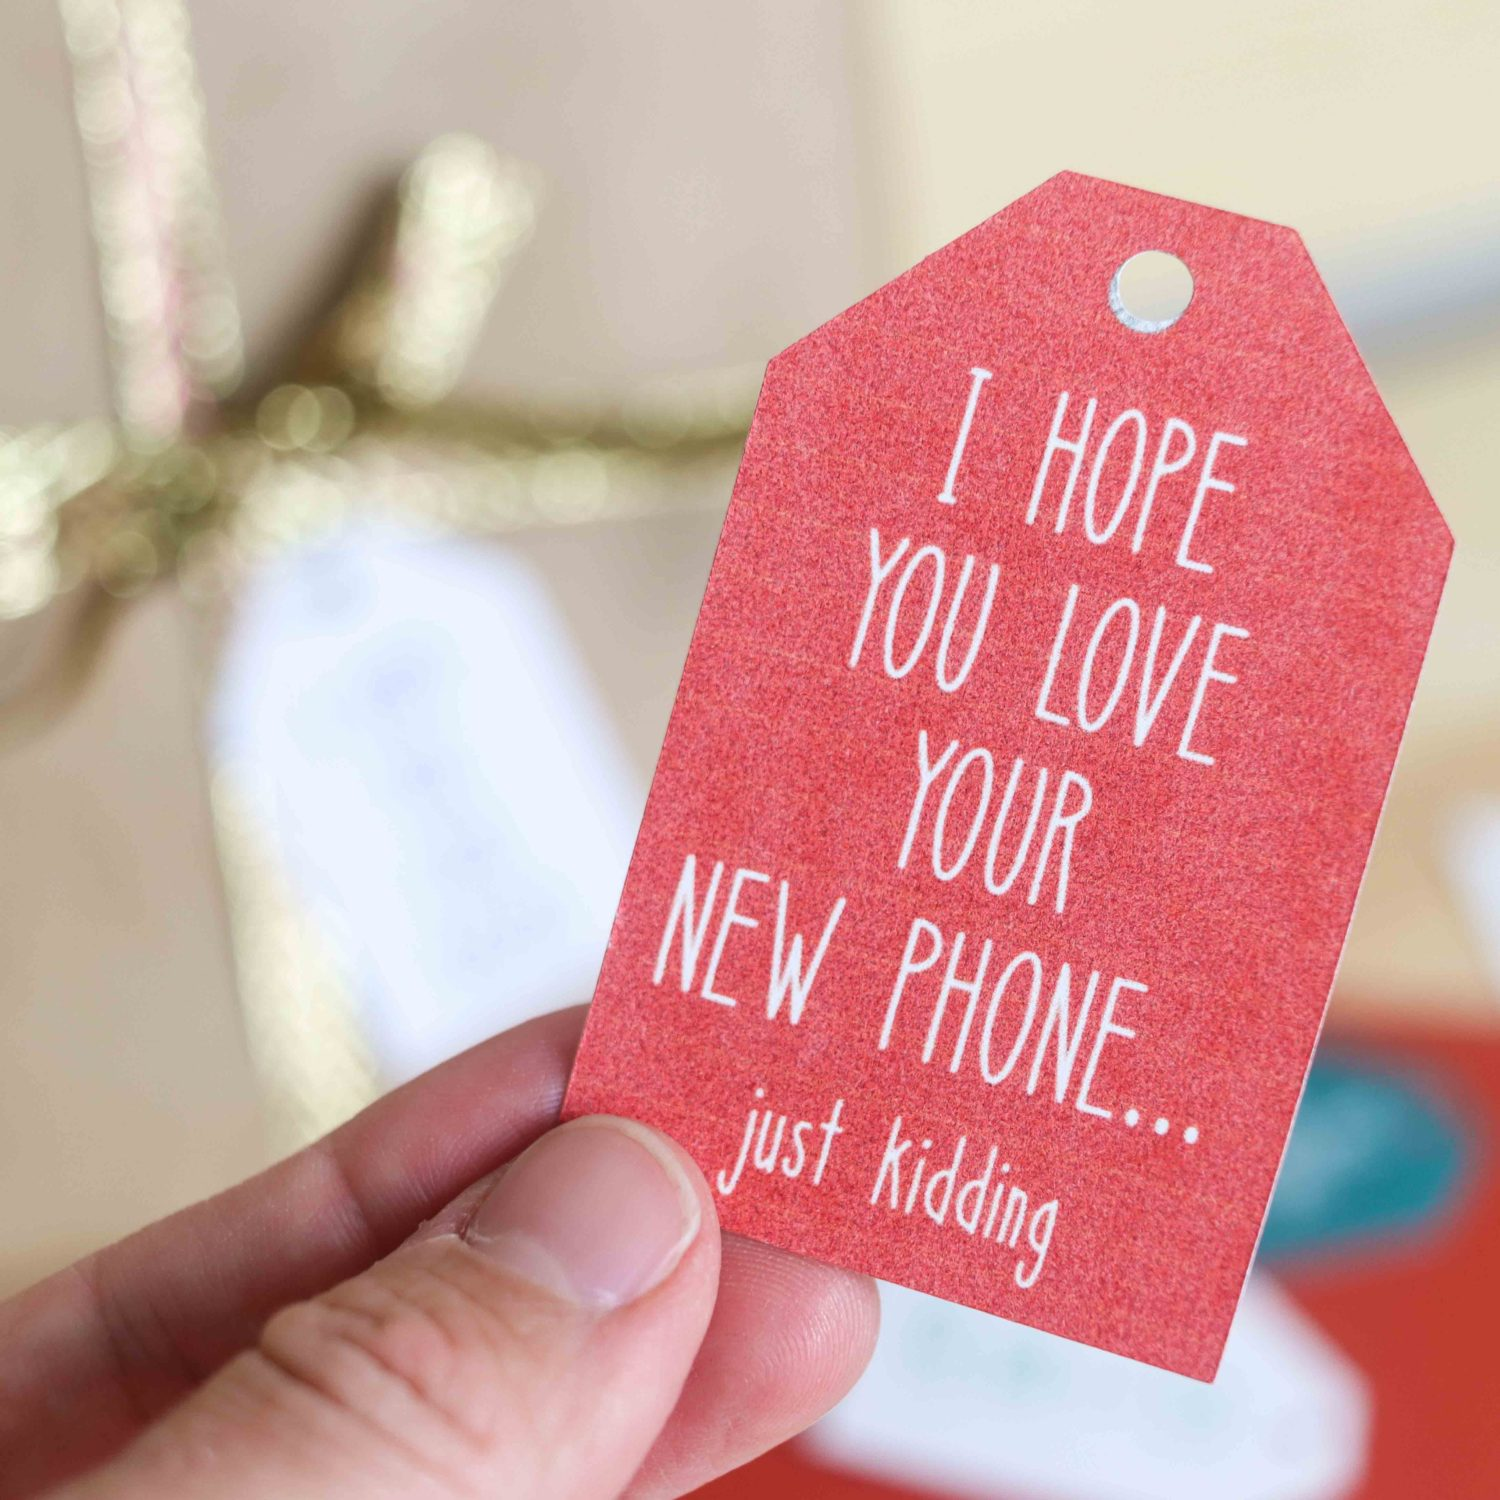 I hope you love your new phone. Christmas gift tag